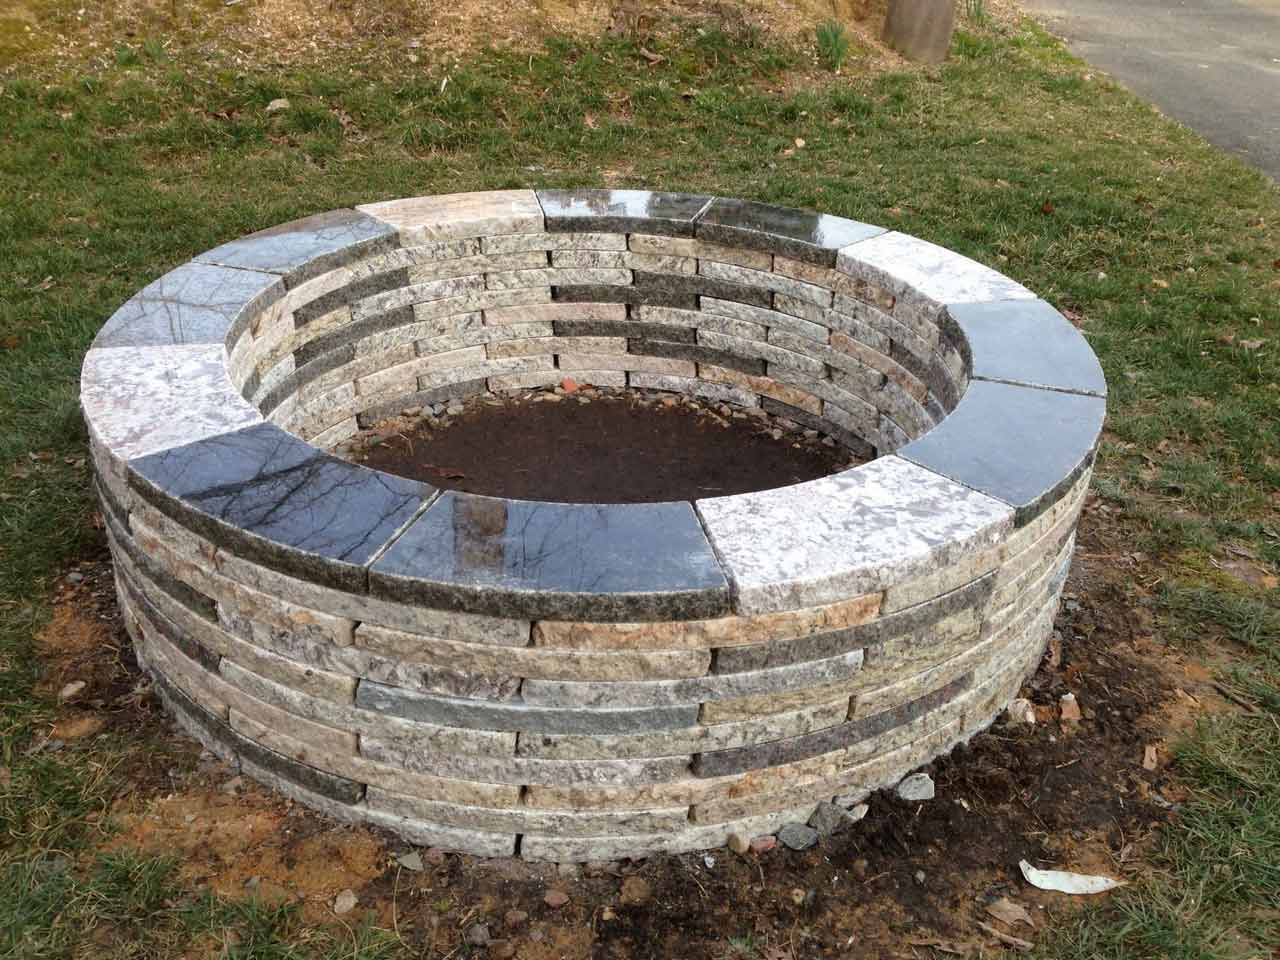 fire pit kit instructions-fire pits near me-cool fire pits-round patio kit with fire pit